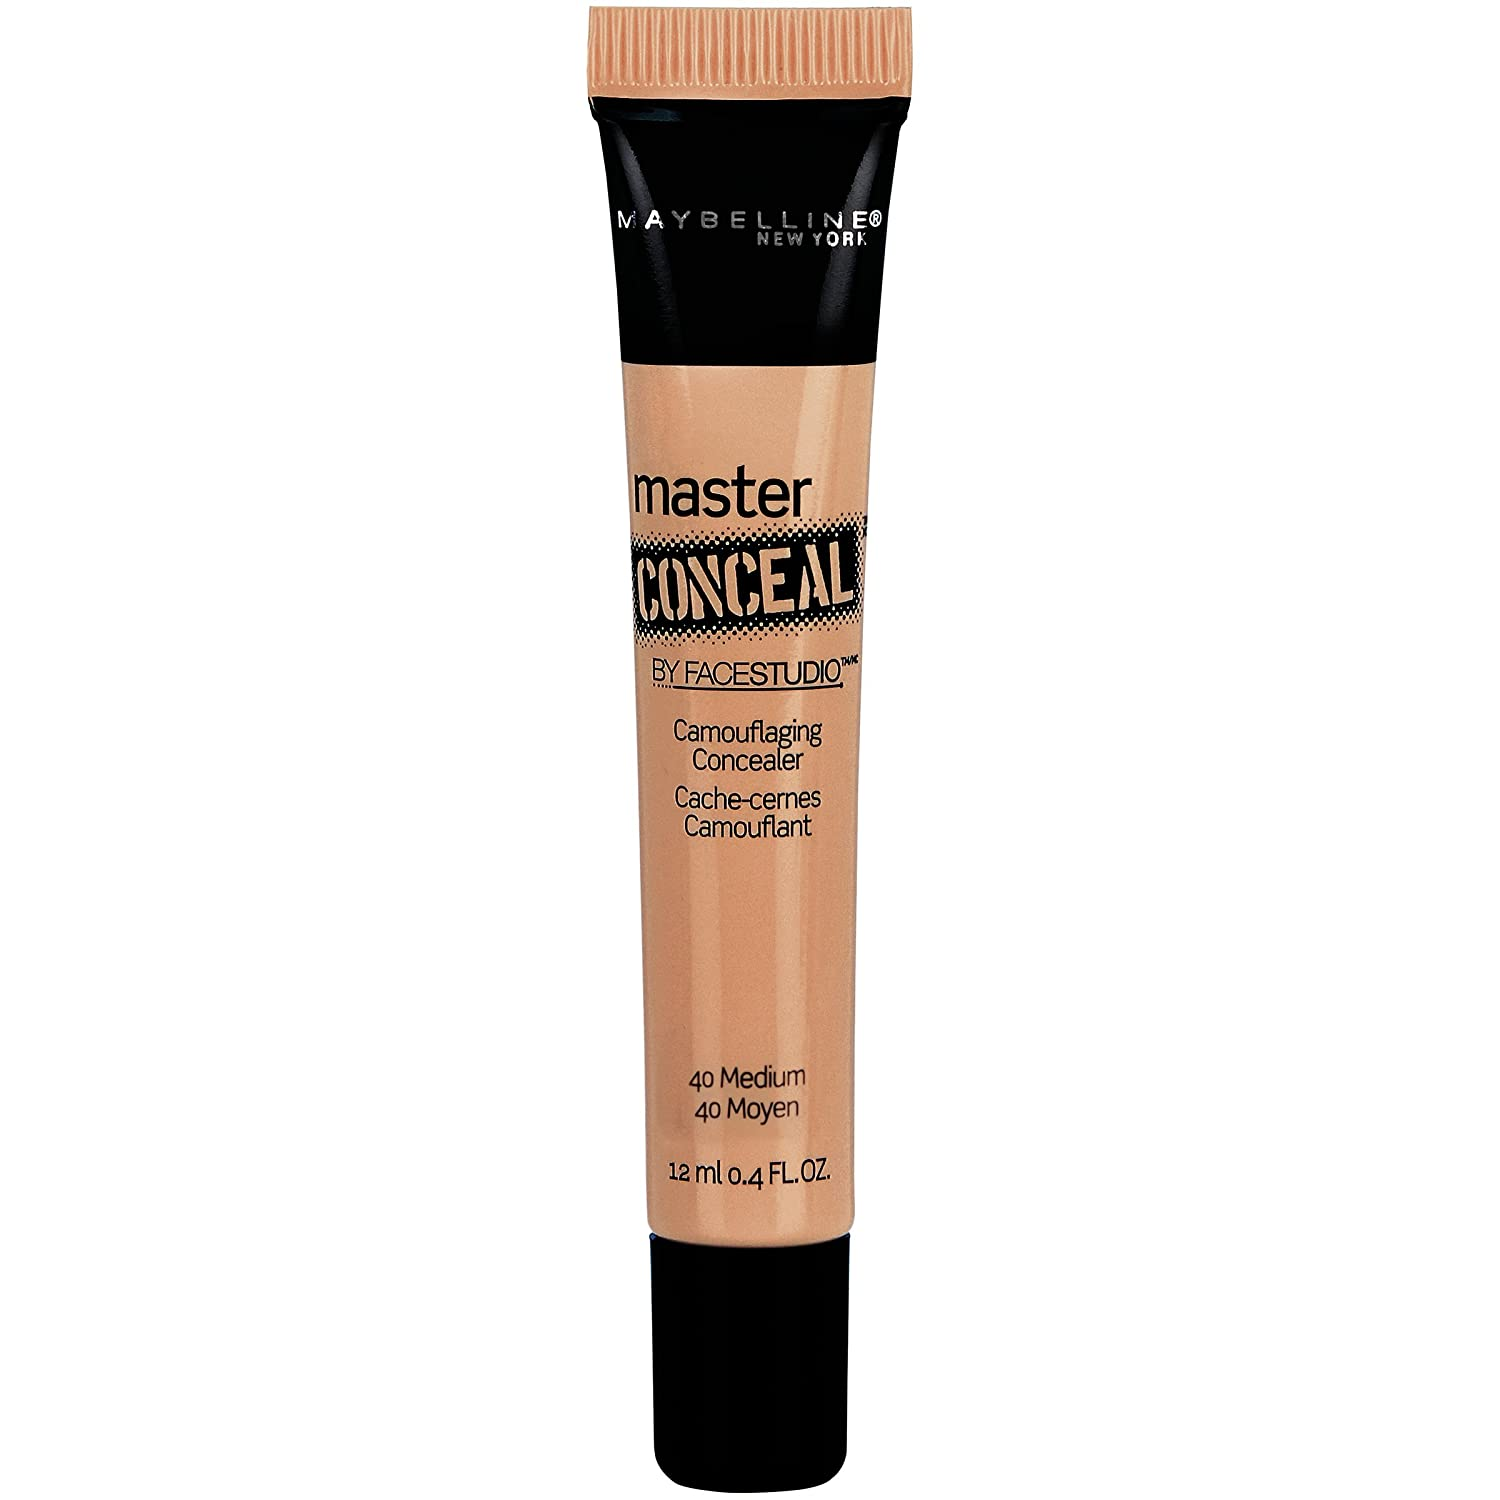 Maybelline New York Face Studio Master Conceal Makeup, Medium, 0.4 Fluid Ounce by Maybelline New York K1819600